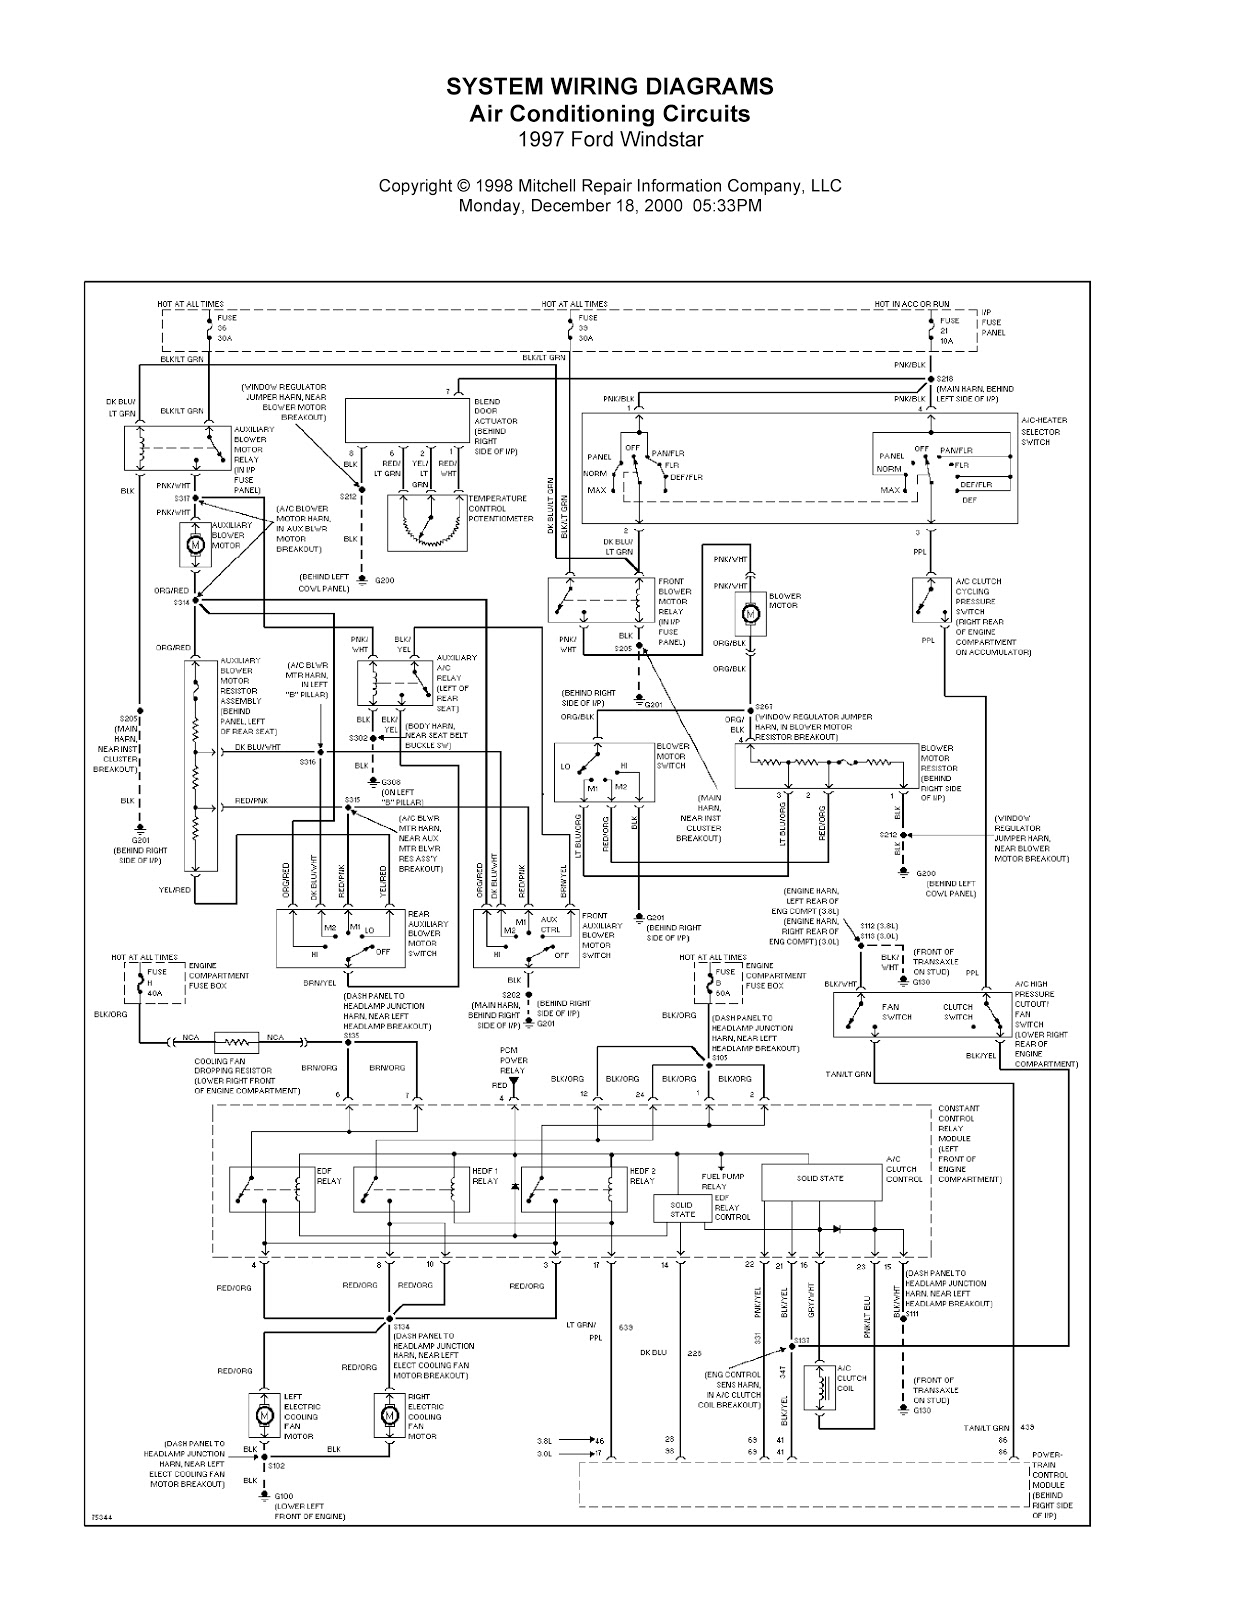 1997 ford windstar complete system wiring diagrams wiring diagrams rh wiringdiagramsolution blogspot com 2005 ford expedition wiring schematic 2005 ford expedition wiring schematic